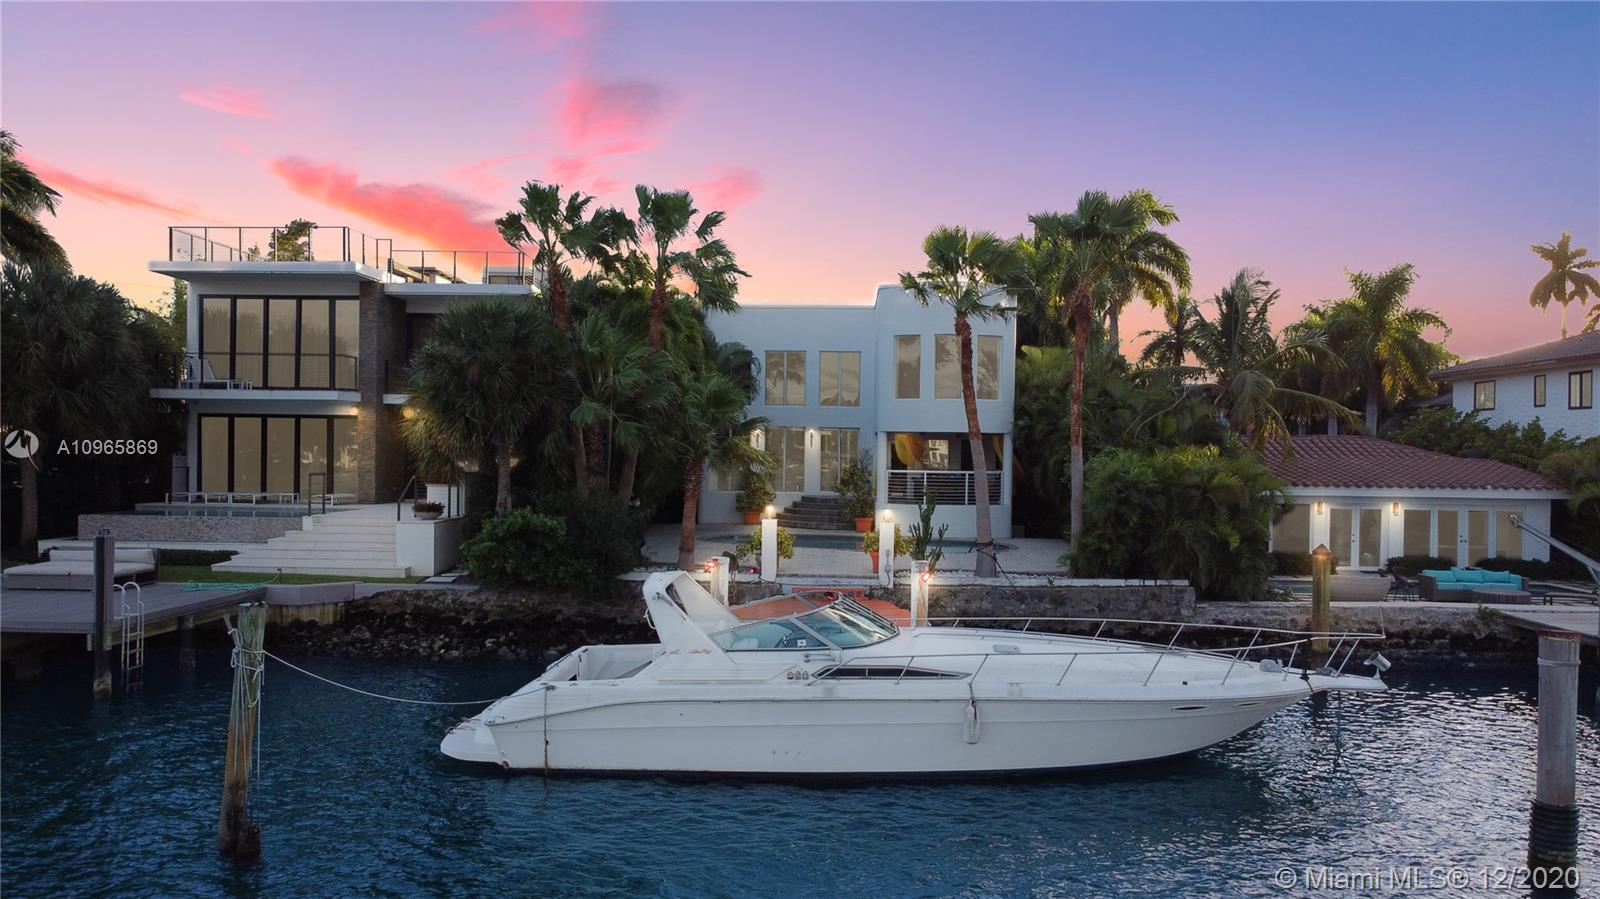 Welcome to the prestigious Palm Island Waterfront Paradise! This beautiful home was designed and built by the owner himself in 2002 to fit his every need imaginable. The home was customized and features a Chef's Kitchen, 20 foot ceilings, oversized grandeur impact windows showcasing the water views. 50 Ft Water Frontage for the yacht, Over Sized Pool, Outdoor covered deck, 4 Bedrooms 4.5 Bathrooms, Over 4,100 Sqft Living Space, Open Loft Theater Space, 1 Car Garage, 7,000 Sqft Lot able to park 4 Cars, Privately Gated, Extravagant Lighting System indoor and outdoor. Easy access to Miami Downtown nightlife and South Beach clubs, restaurants and everyday beach life!